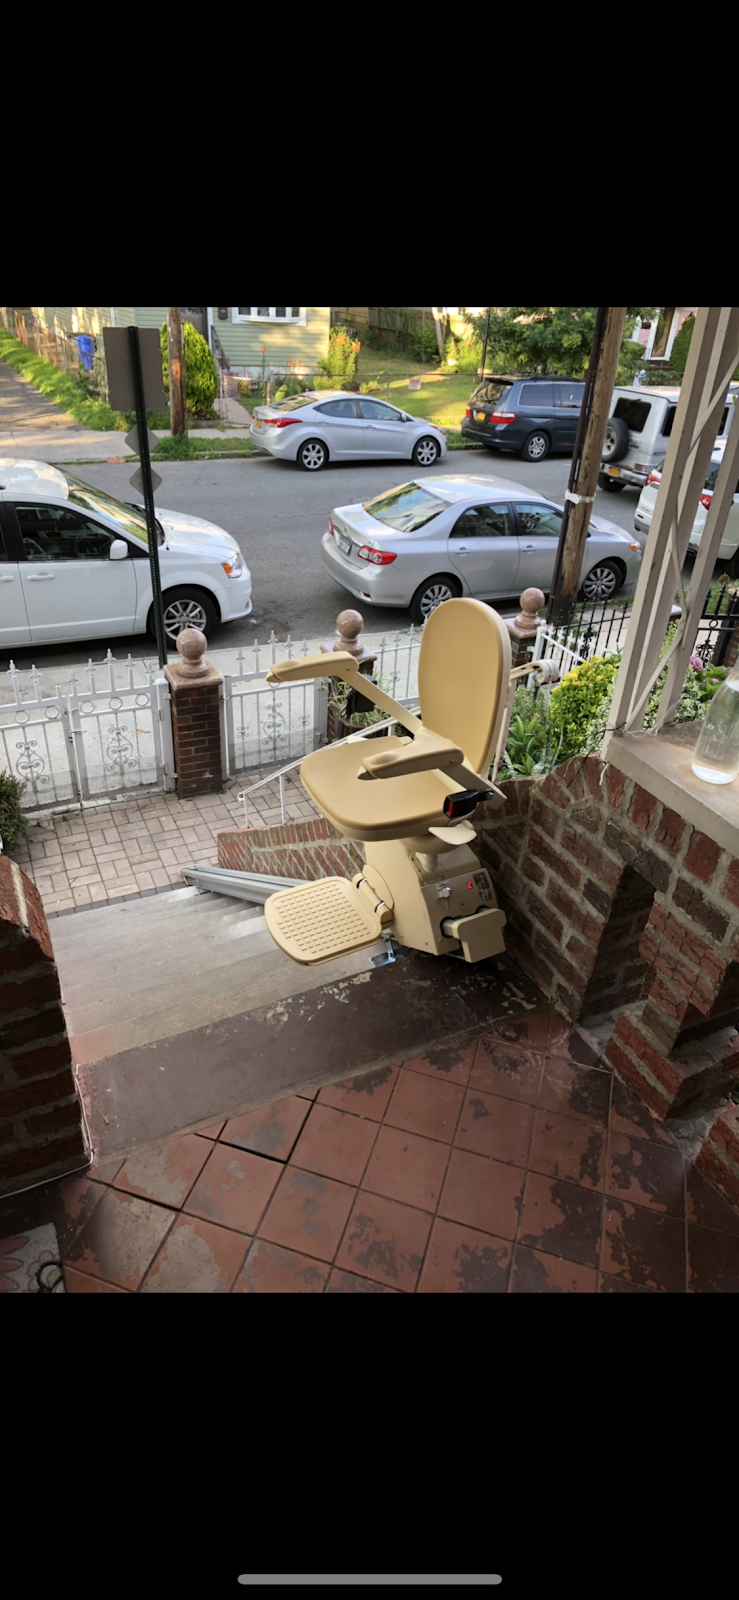 Stairlifts Pro Installation and Repair - car rental  | Photo 10 of 10 | Address: 260 E Westfield Ave, Roselle Park, NJ 07204, USA | Phone: (718) 915-7743